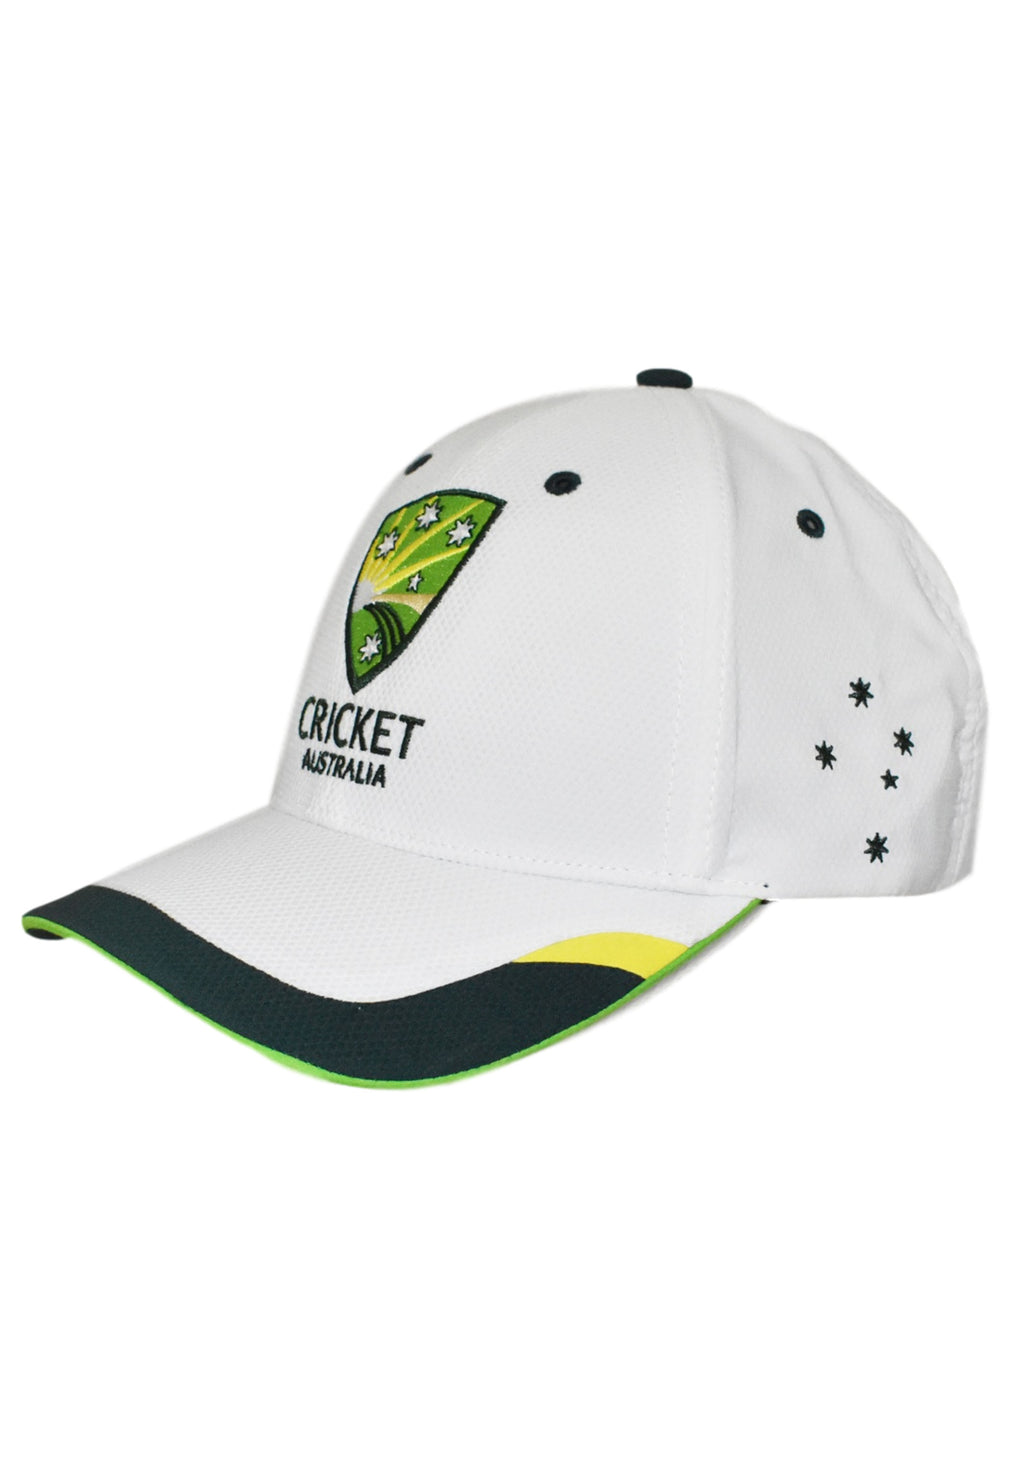 ASICS CRICKET AUSTRALIA FITTED REPLICA TRAINING CAP <br> CAMR1433L